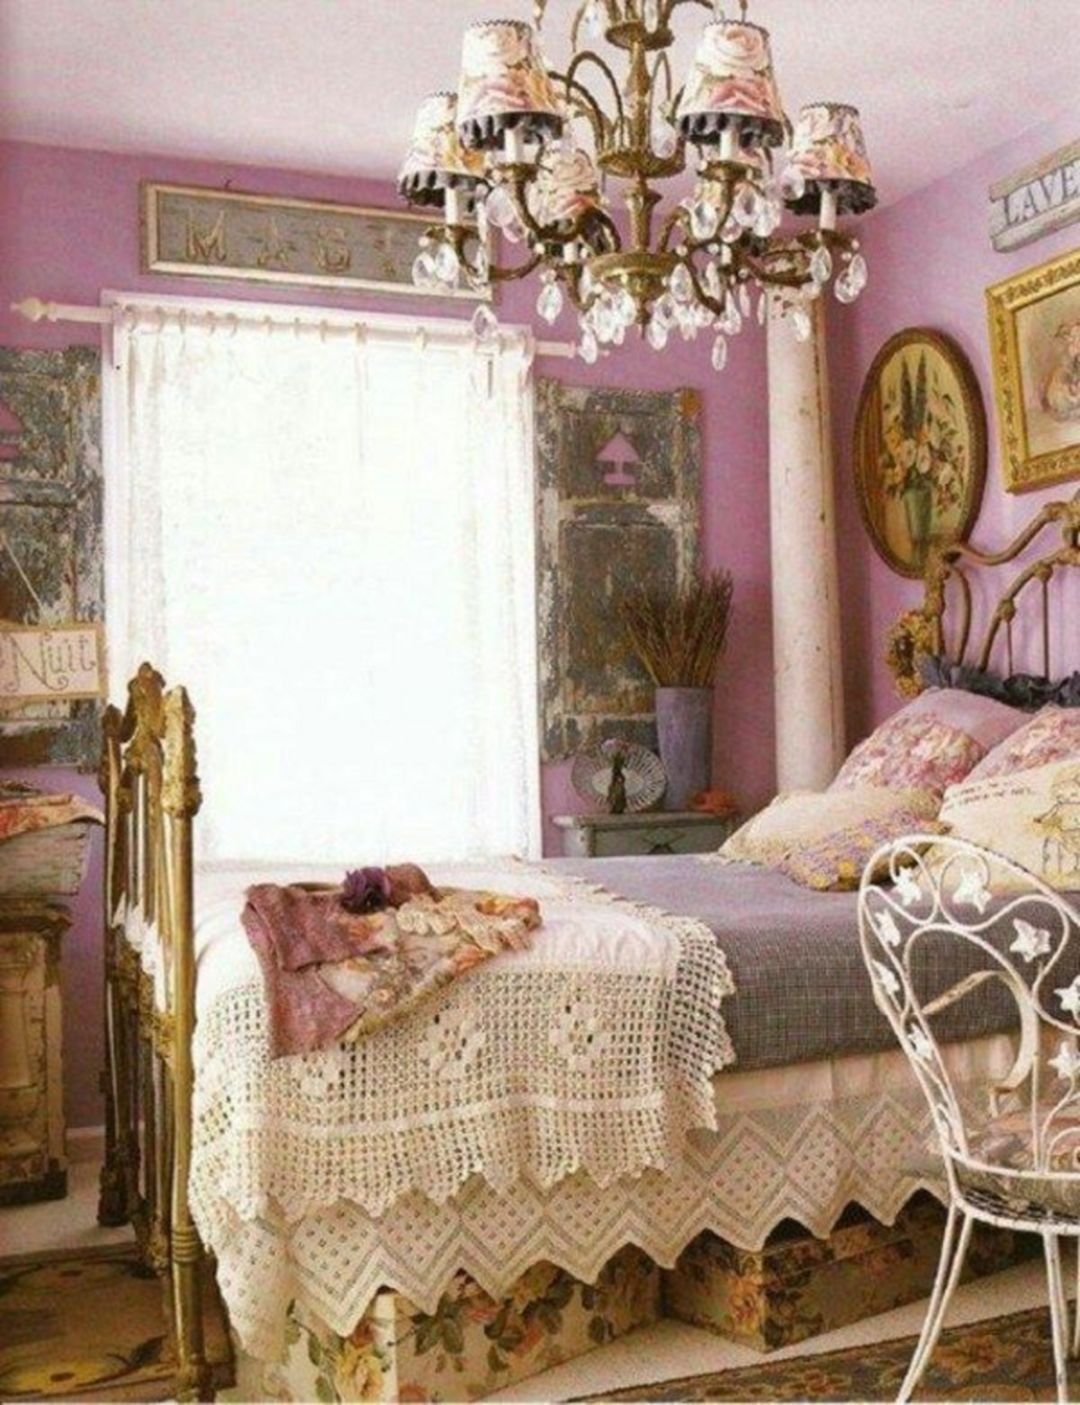 30 Charming Shabby Chic Bedroom Design Ideas Shabby Chic Room